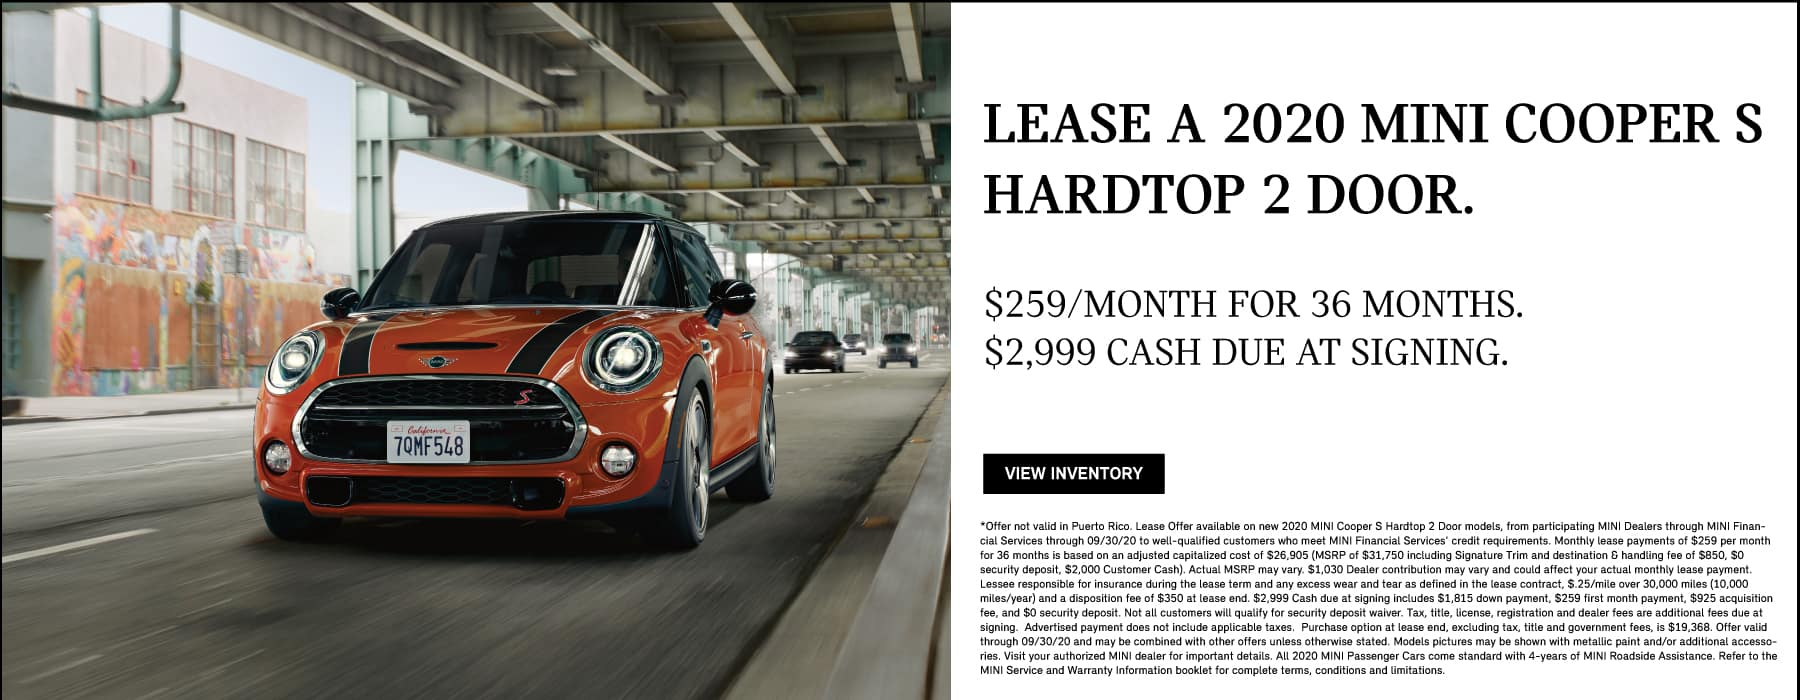 Alt Text: CooperLease a 2020 MINI Cooper S Hardtop 2 Door for $259/month and $2,999 Cash due at signing through 9/30/20. View Inventory